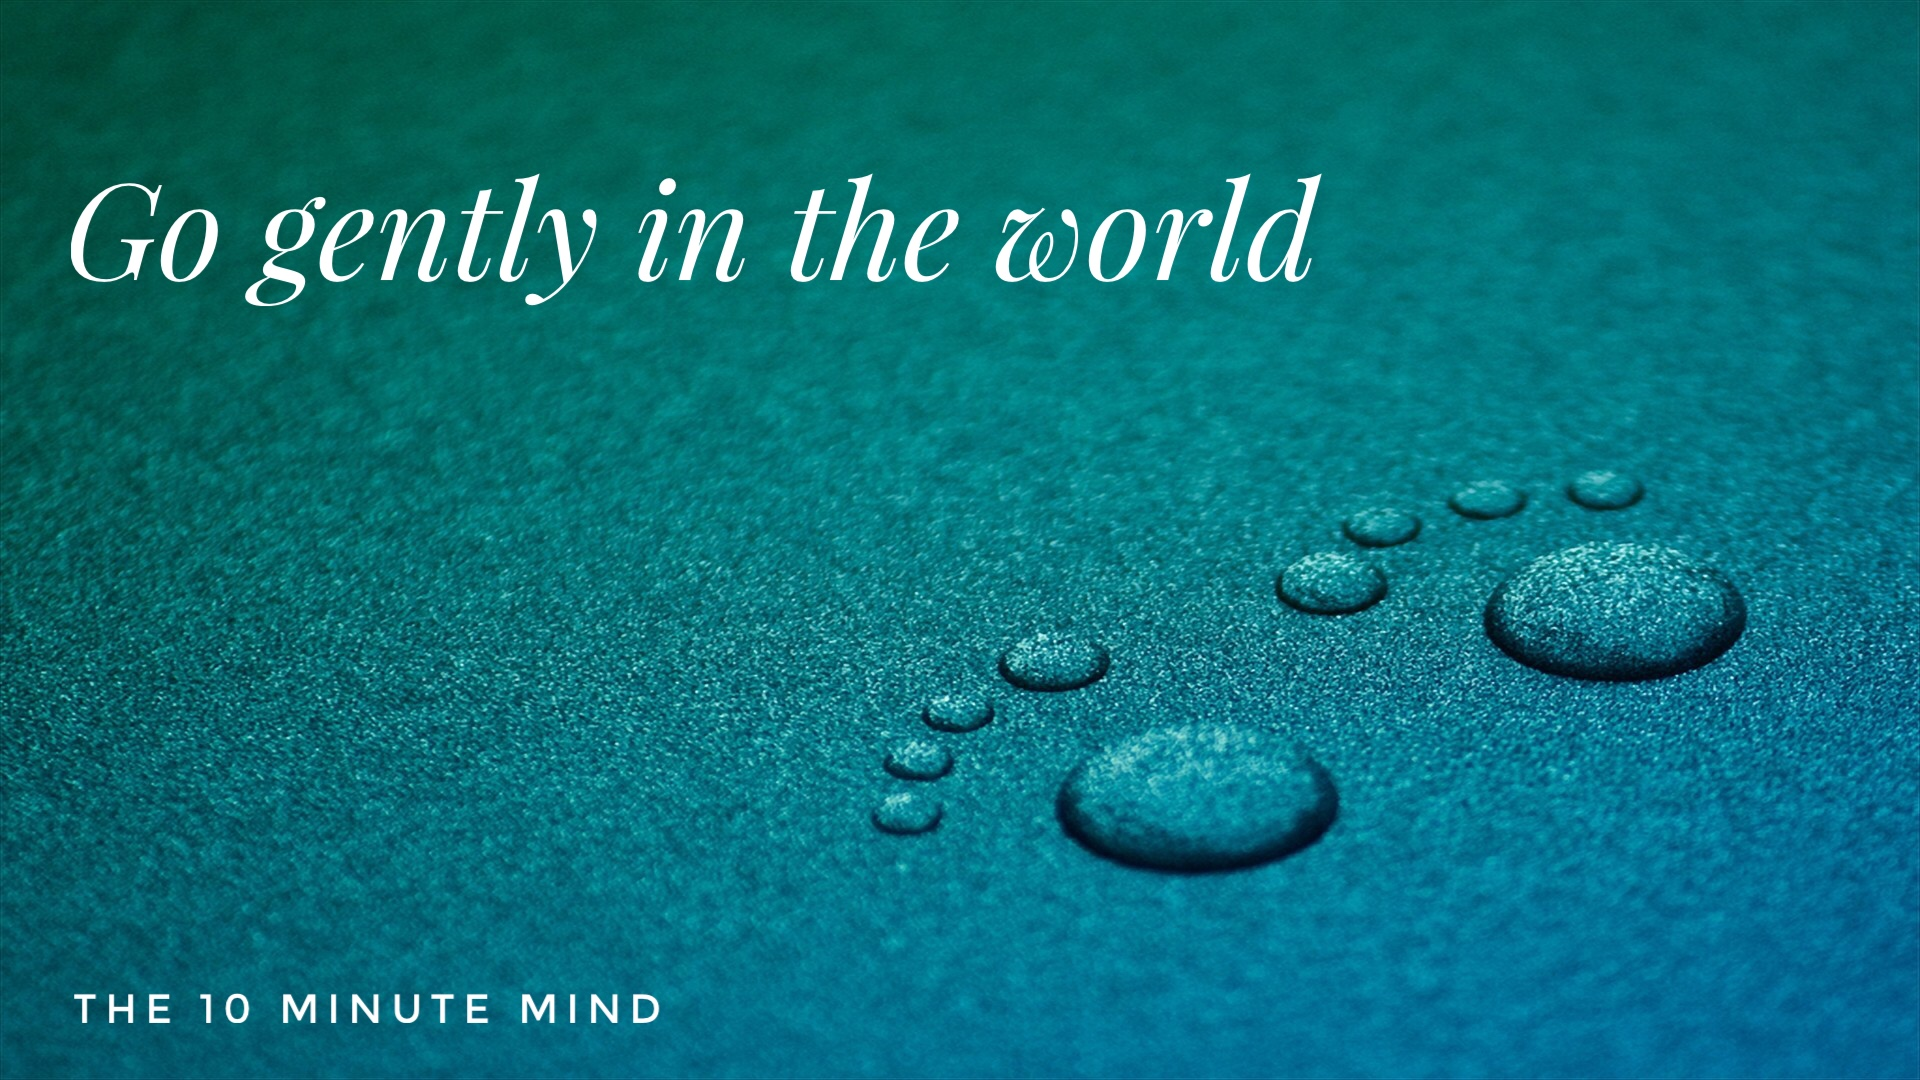 The 10 Minute Mind is a online guided mindfulness meditation program that's  been developed for busy people who want to feel less stressed and reduce  Anxiety